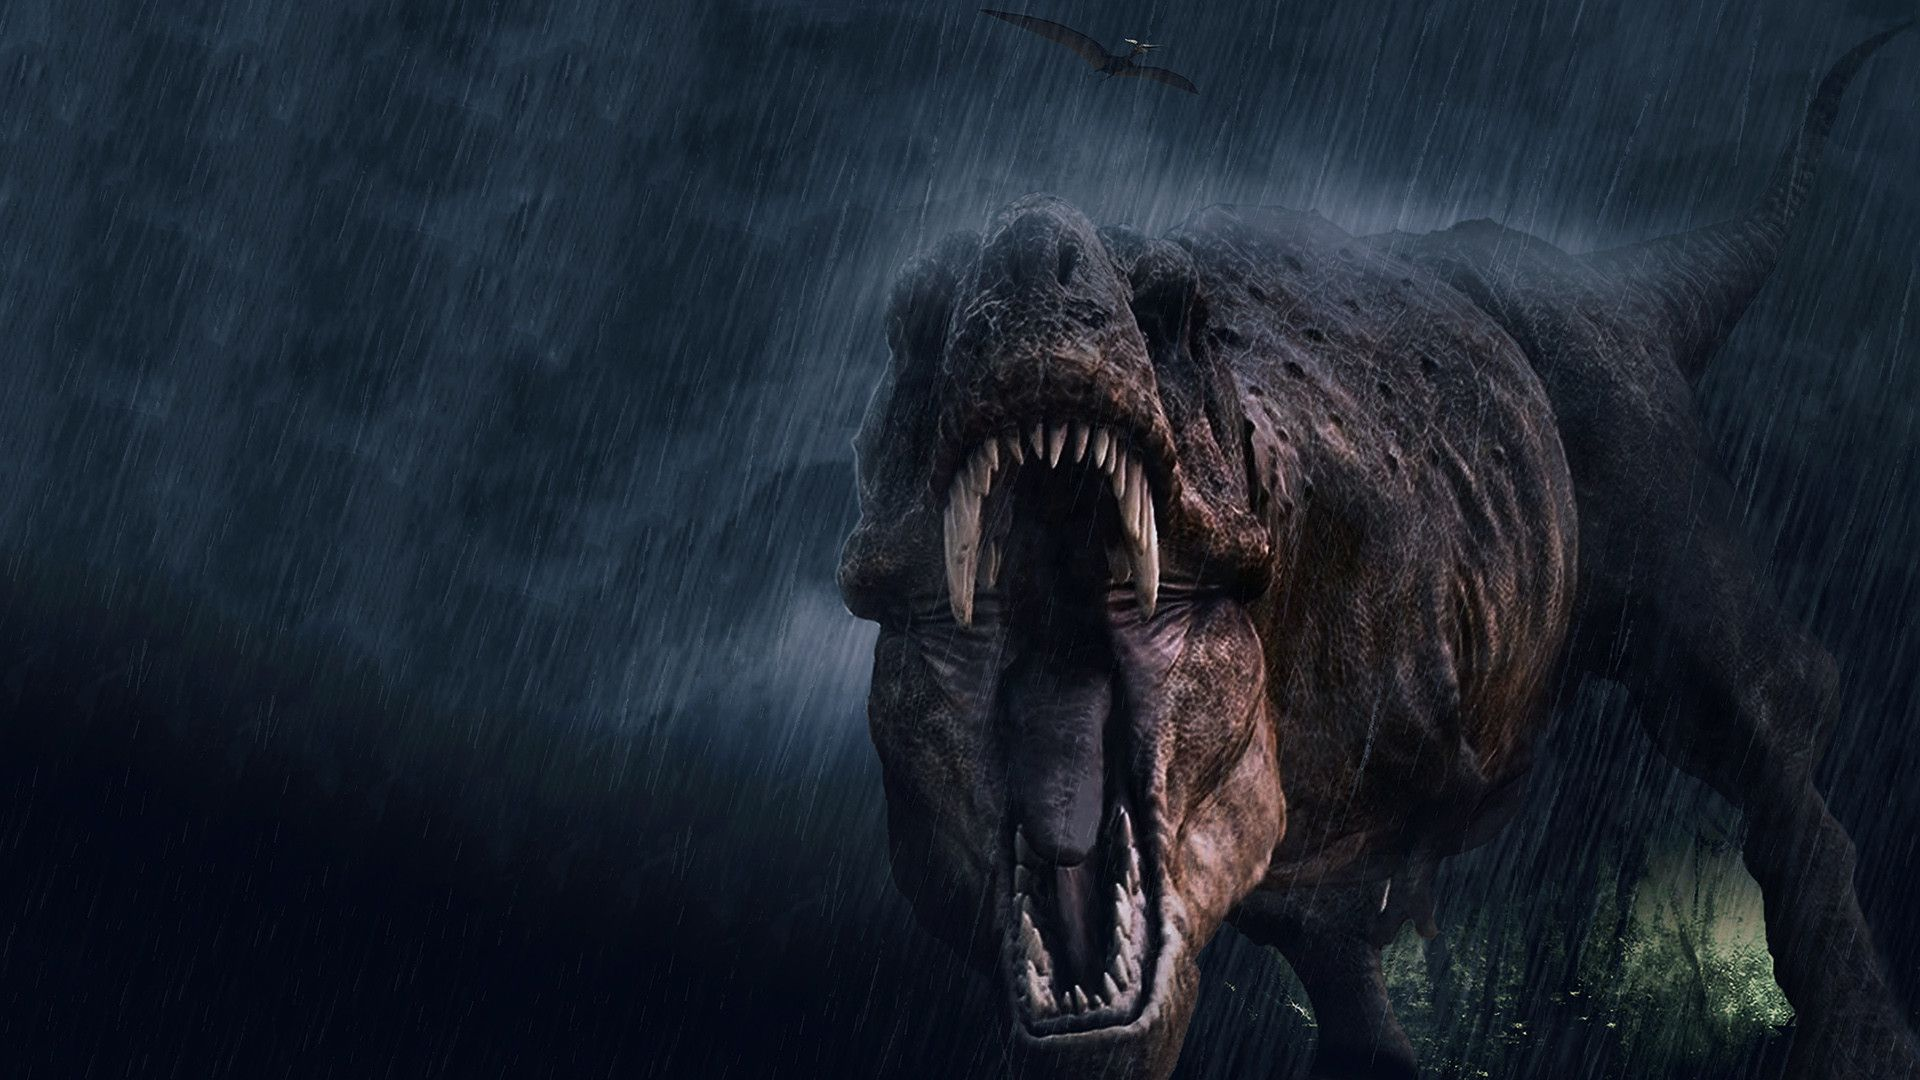 Res 1920x1080 Movie The Lost World Jurassic Park Wallpaper